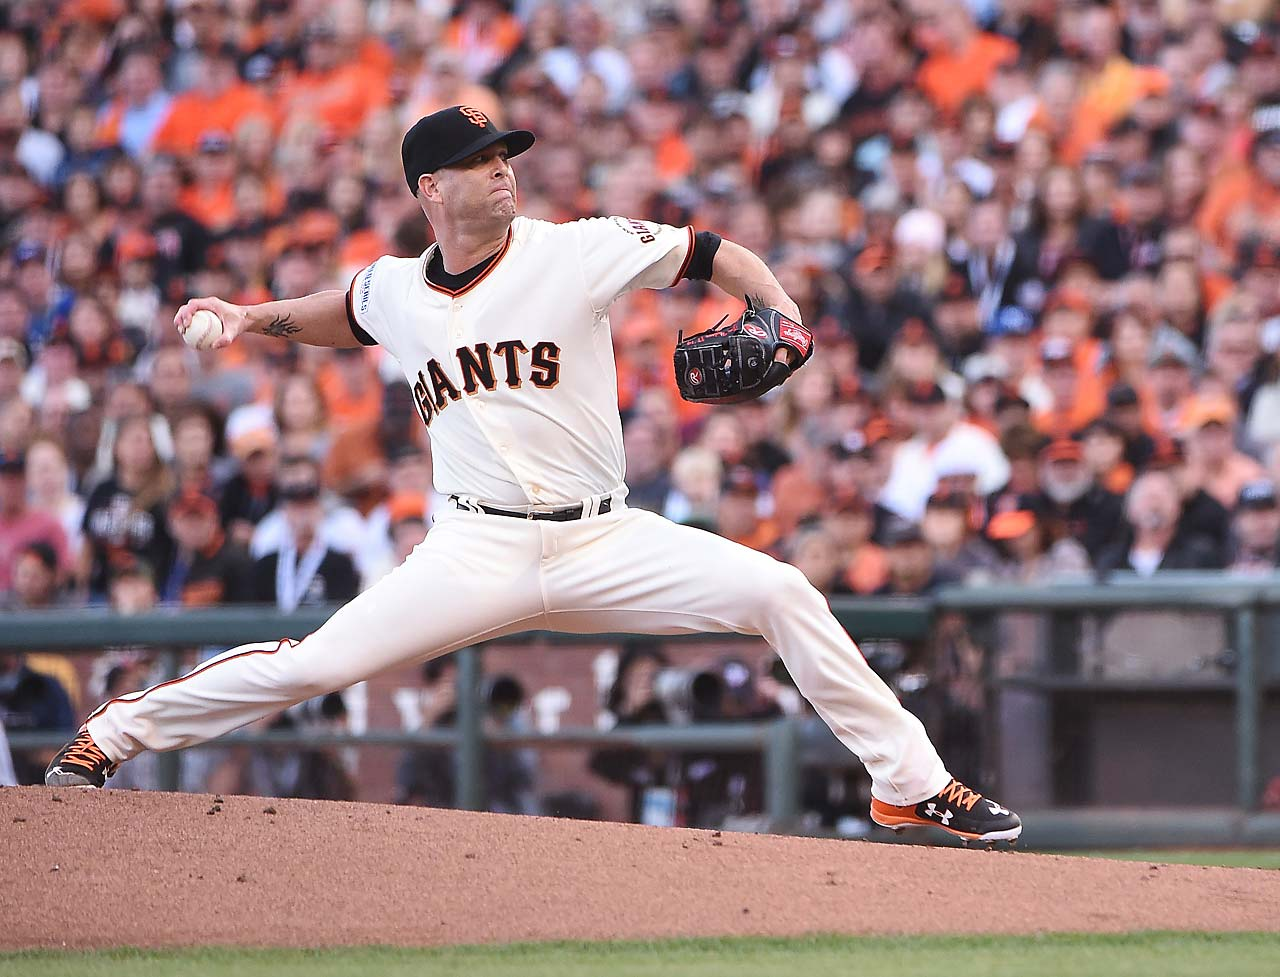 Tim Hudson allowed three unearned runs on four hits to absorb the loss.